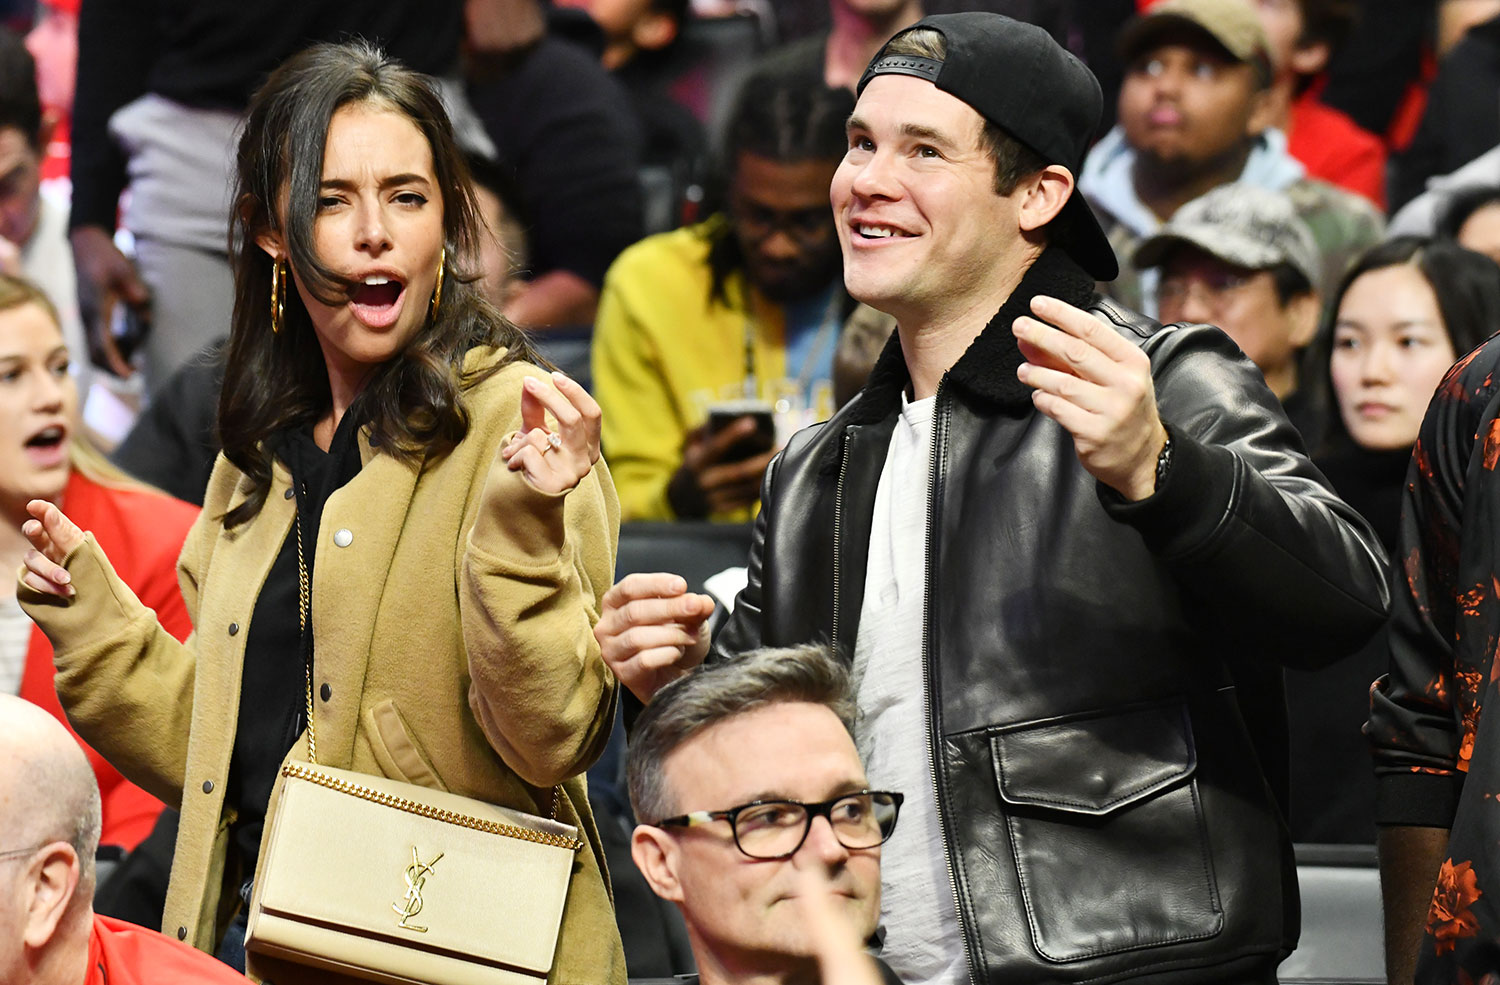 Chloe Bridges and Adam DeVine attend a basketball game between the Los Angeles Clippers and the Houston Rockets at Staples Center on December 19, 2019 in Los Angeles, California